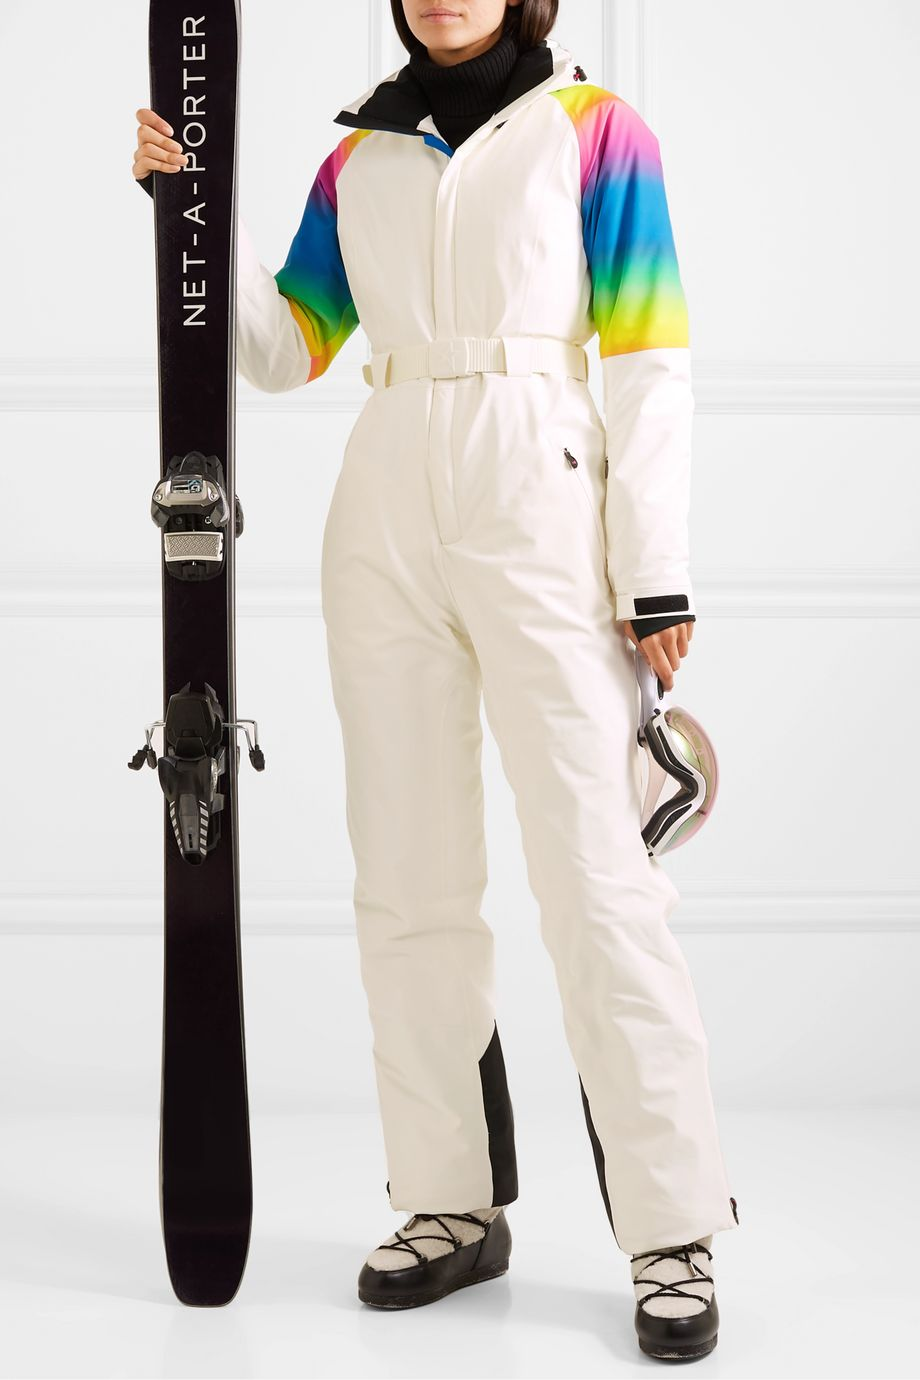 Perfect Moment Chamonix hooded printed padded ski suit